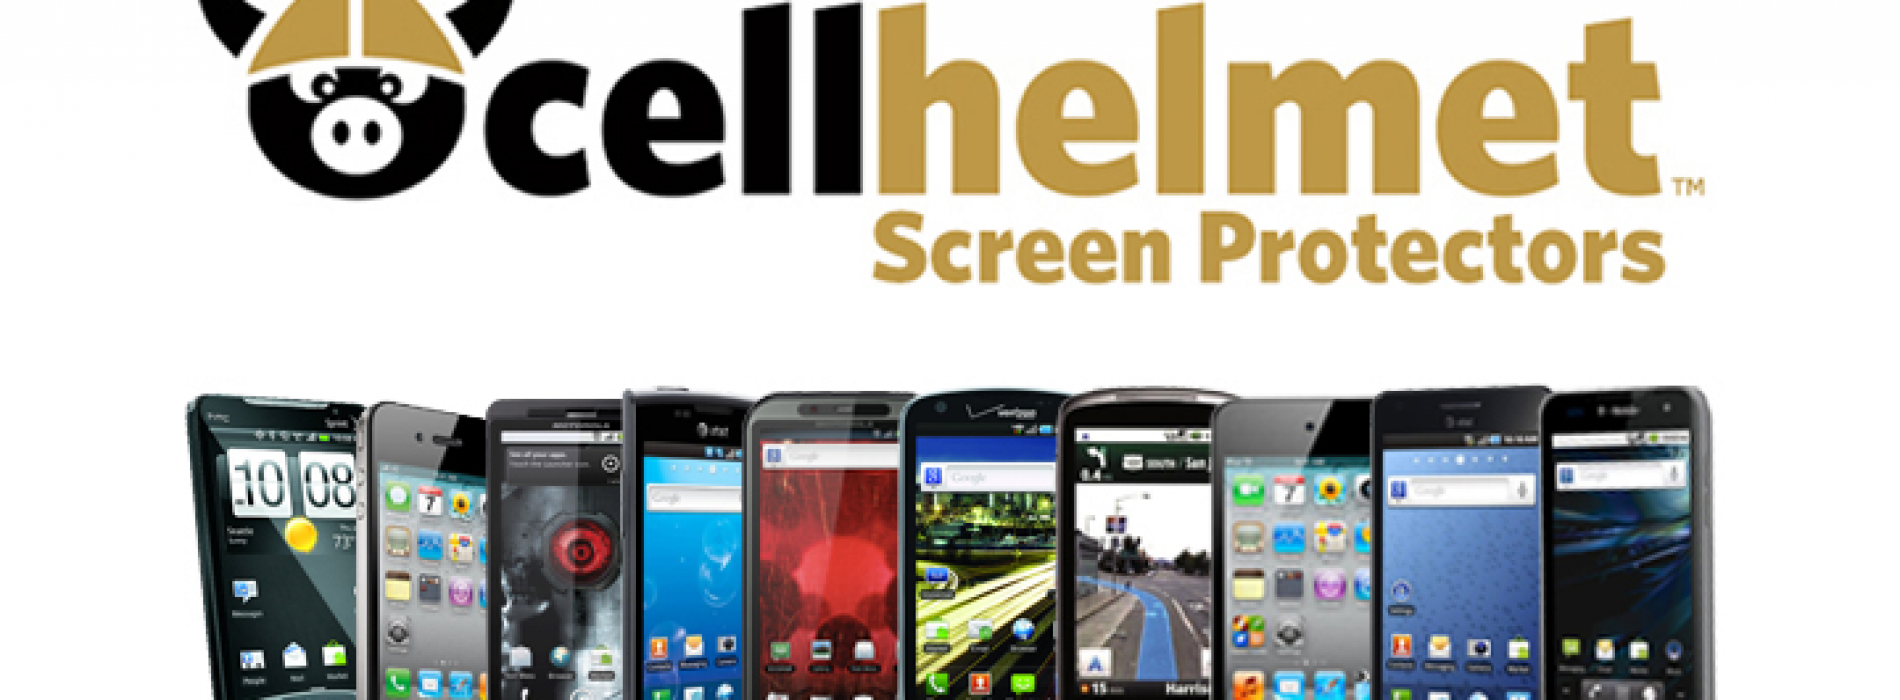 Get guaranteed screen protection from Cellhelmet